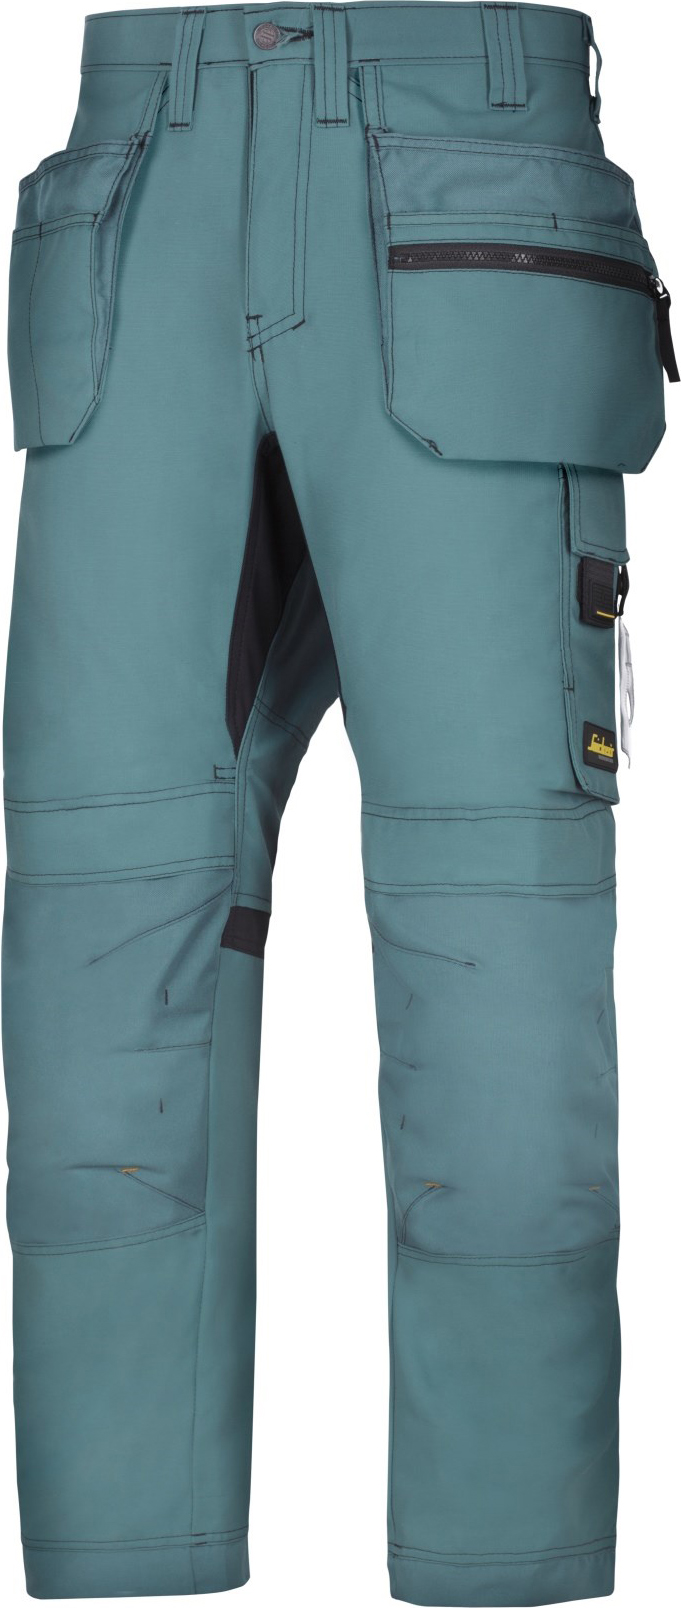 Snickers 62005151150 Trousers 34Wx34L